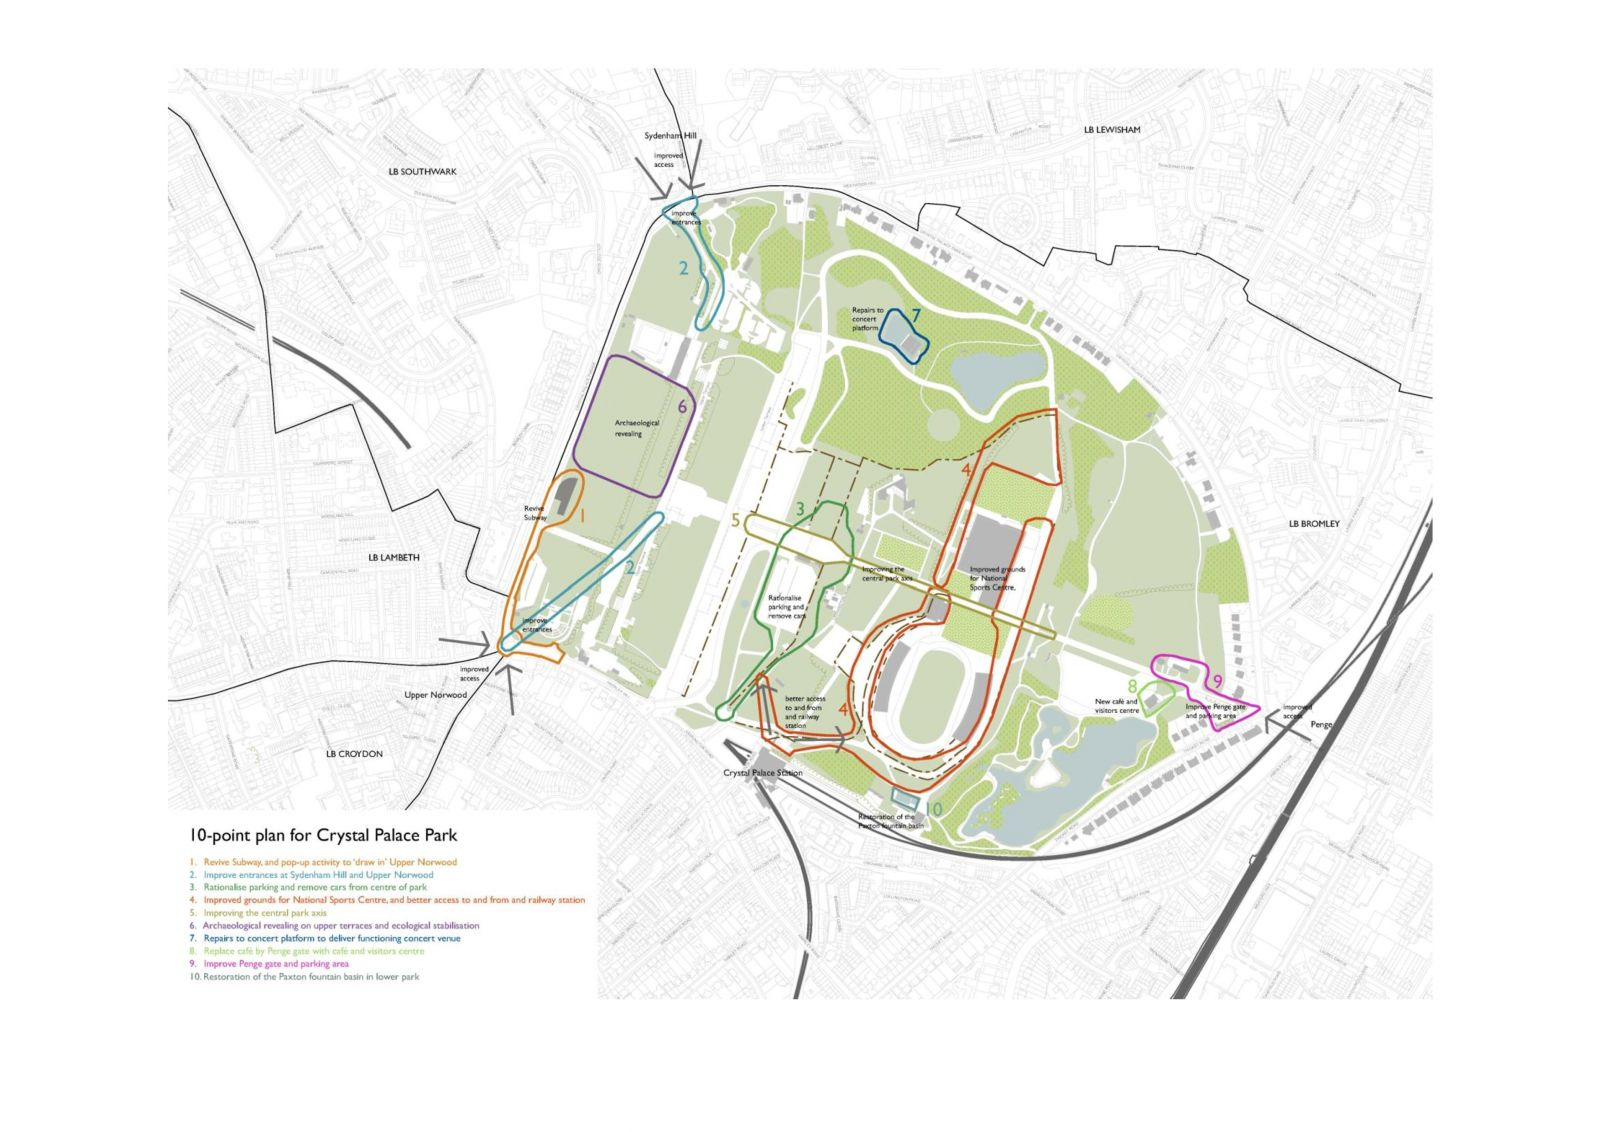 GLA 10 point plan for Crystal Palace Park